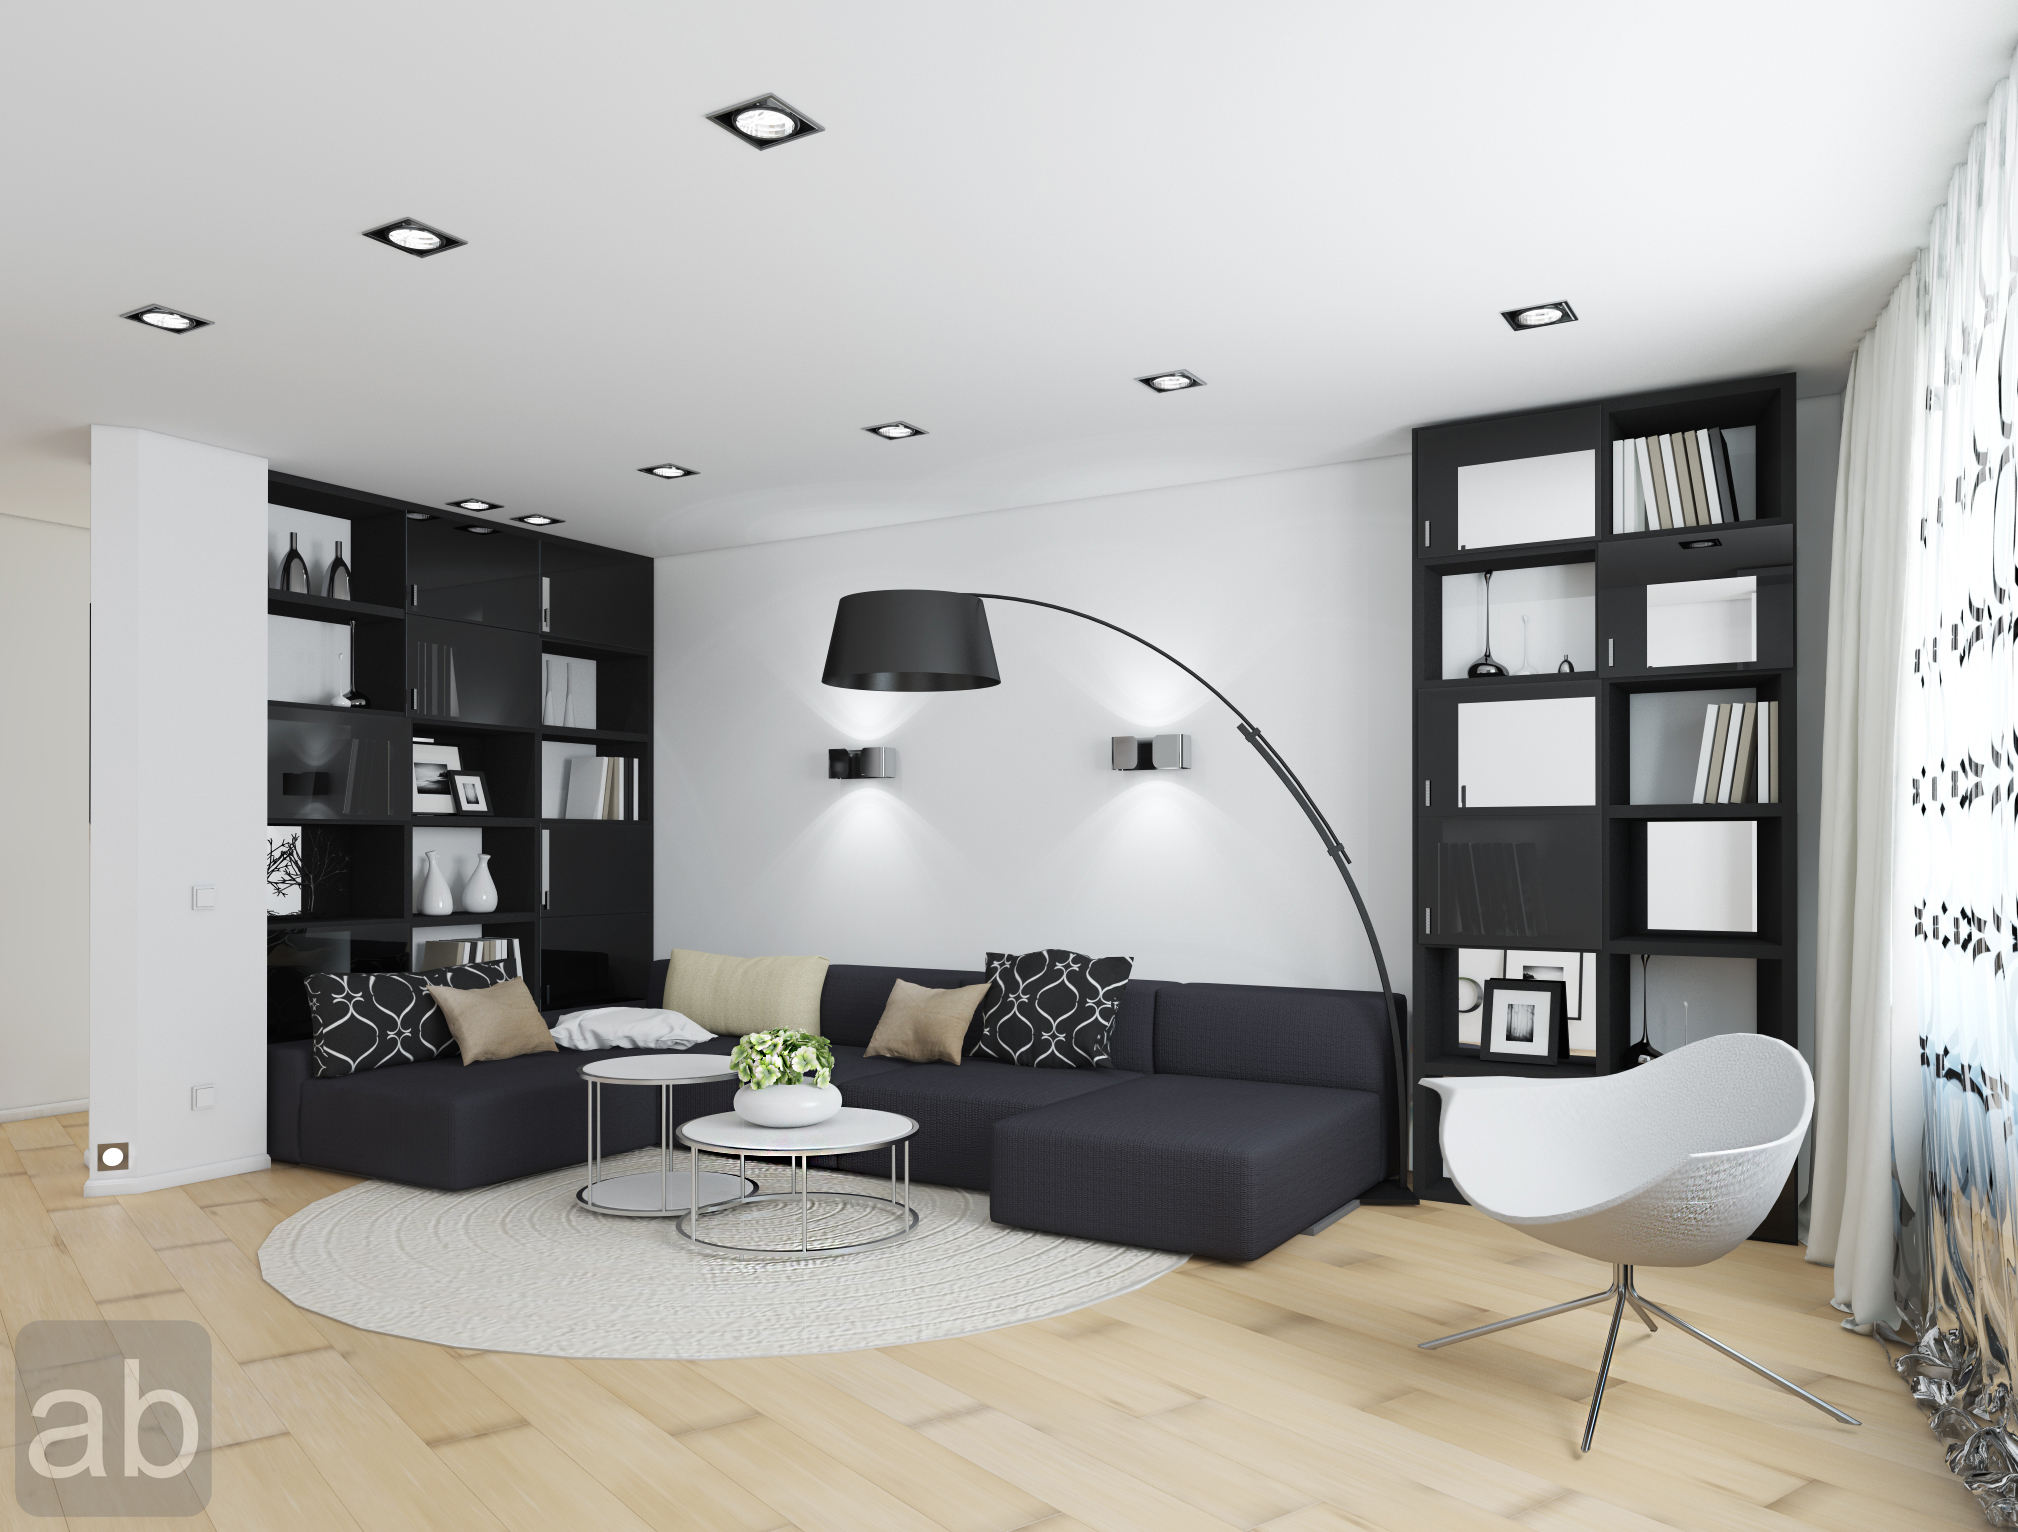 Black and white living room ideas home decorating ideas for Black living room ideas